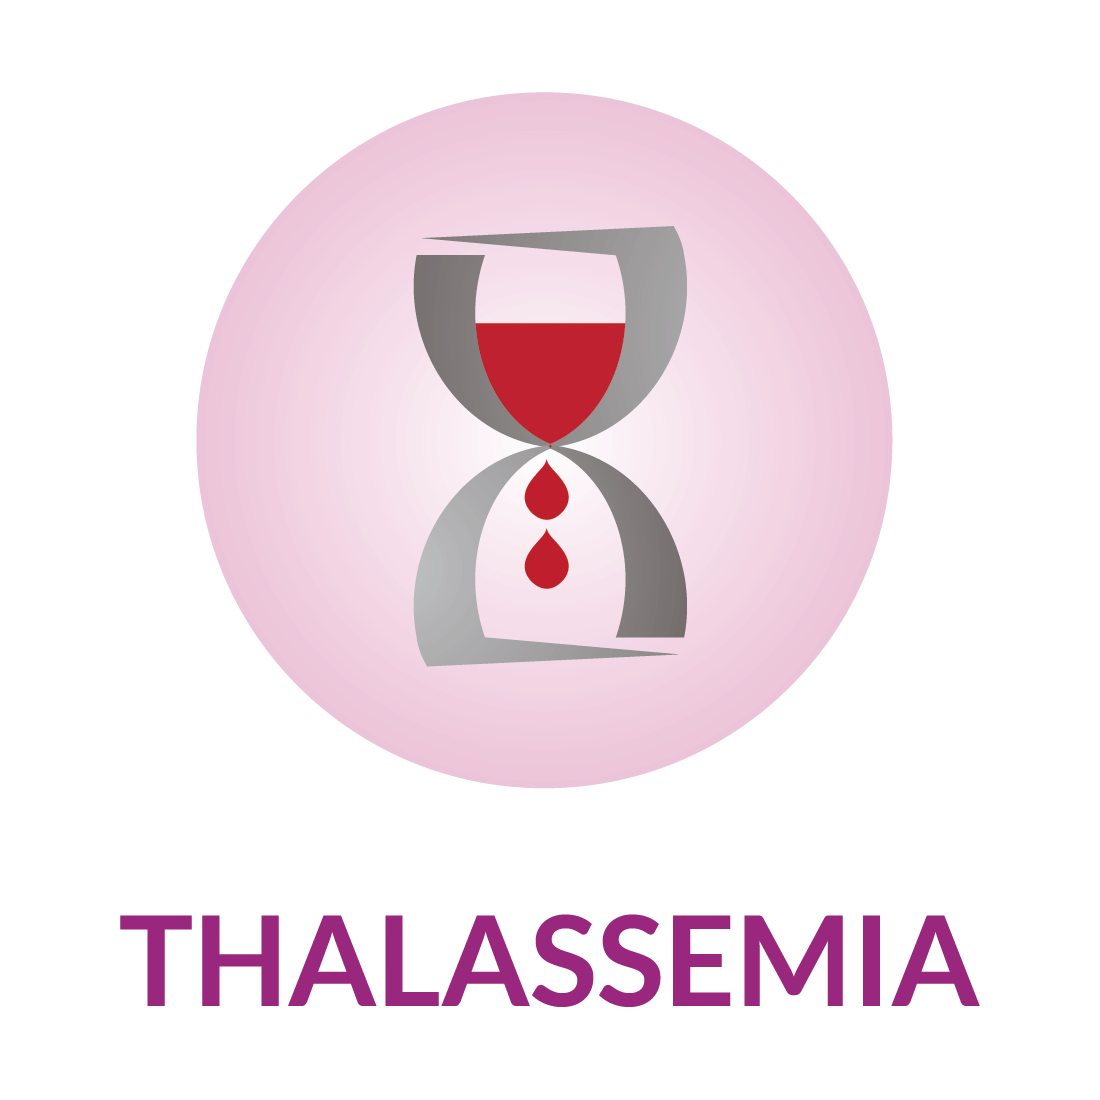 Missions clipart thalassemia. Welcome to life thalassaemia